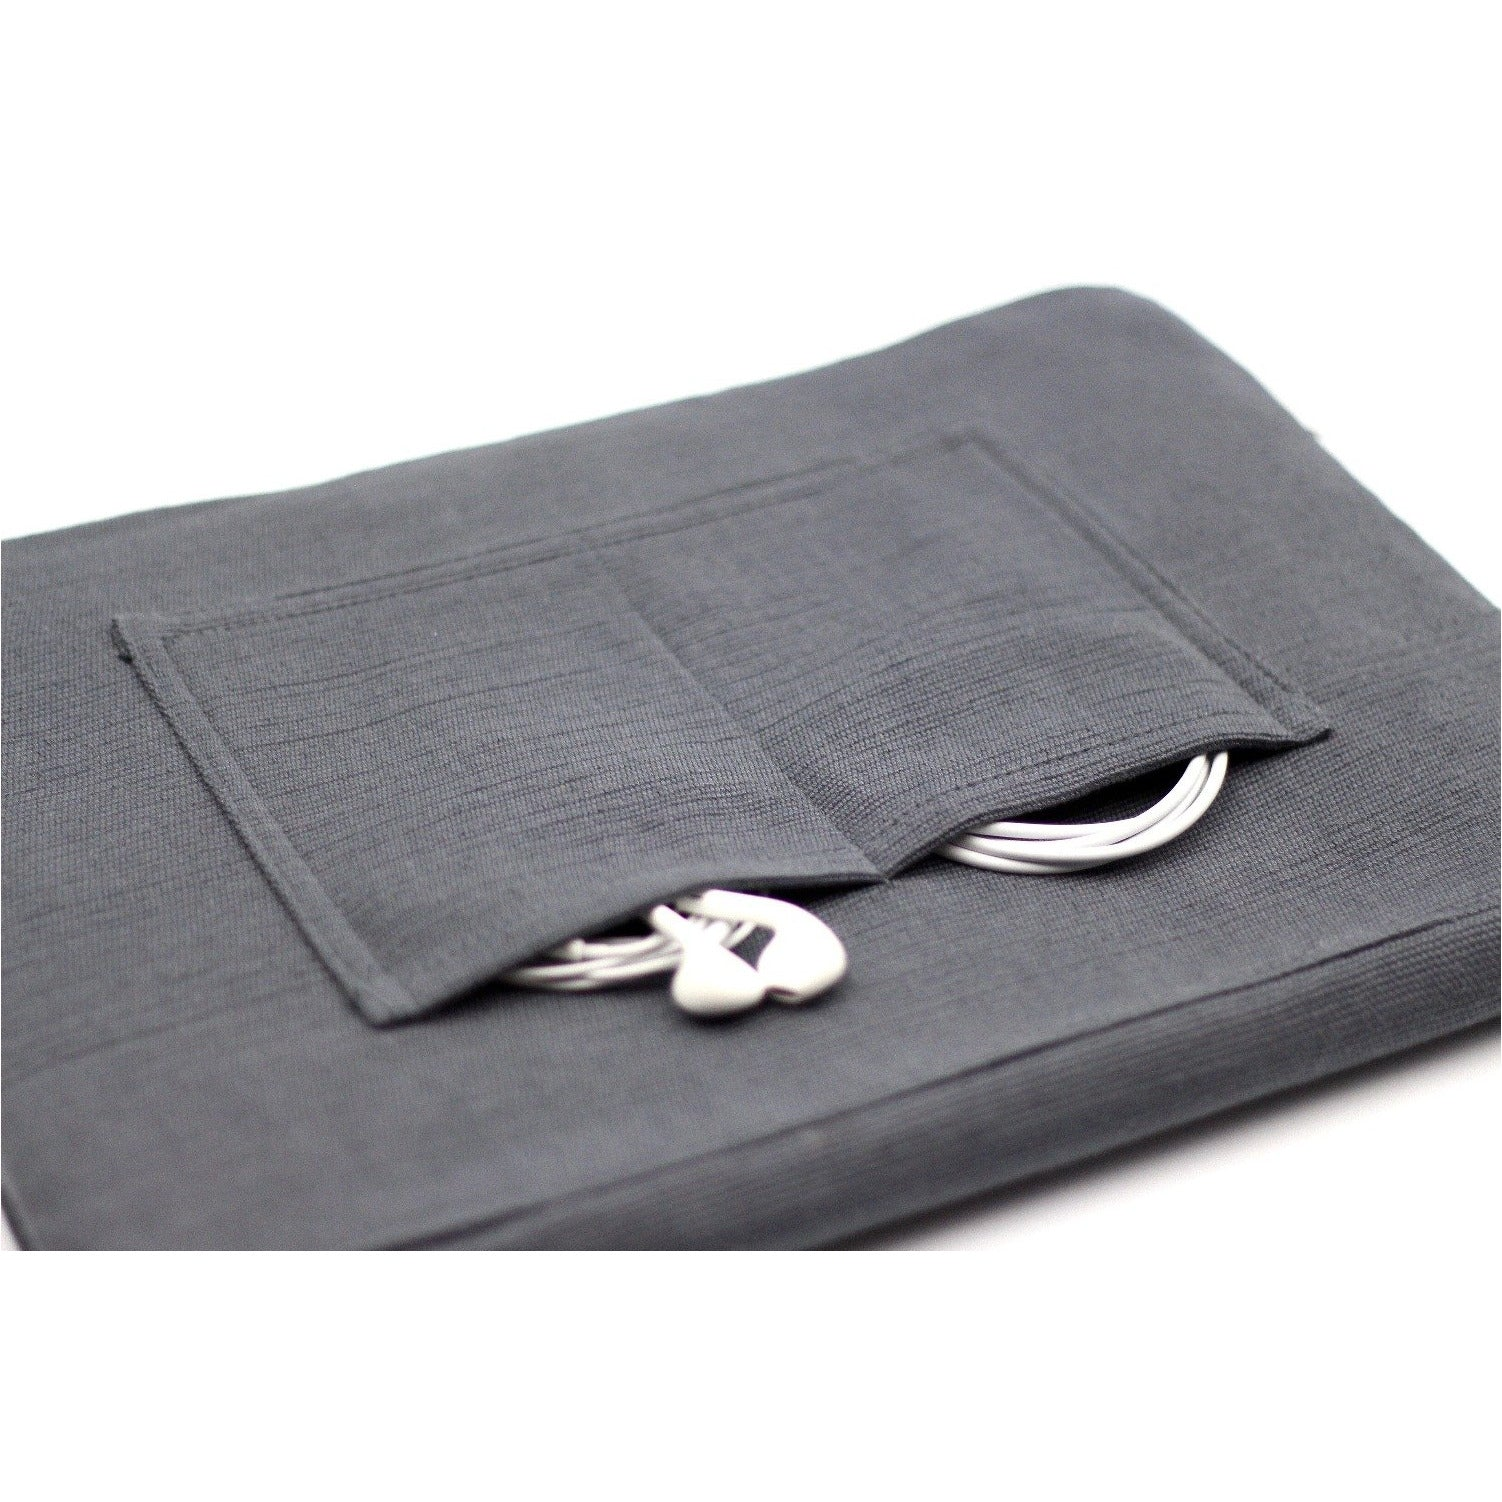 uq k'iche laptop case pockets